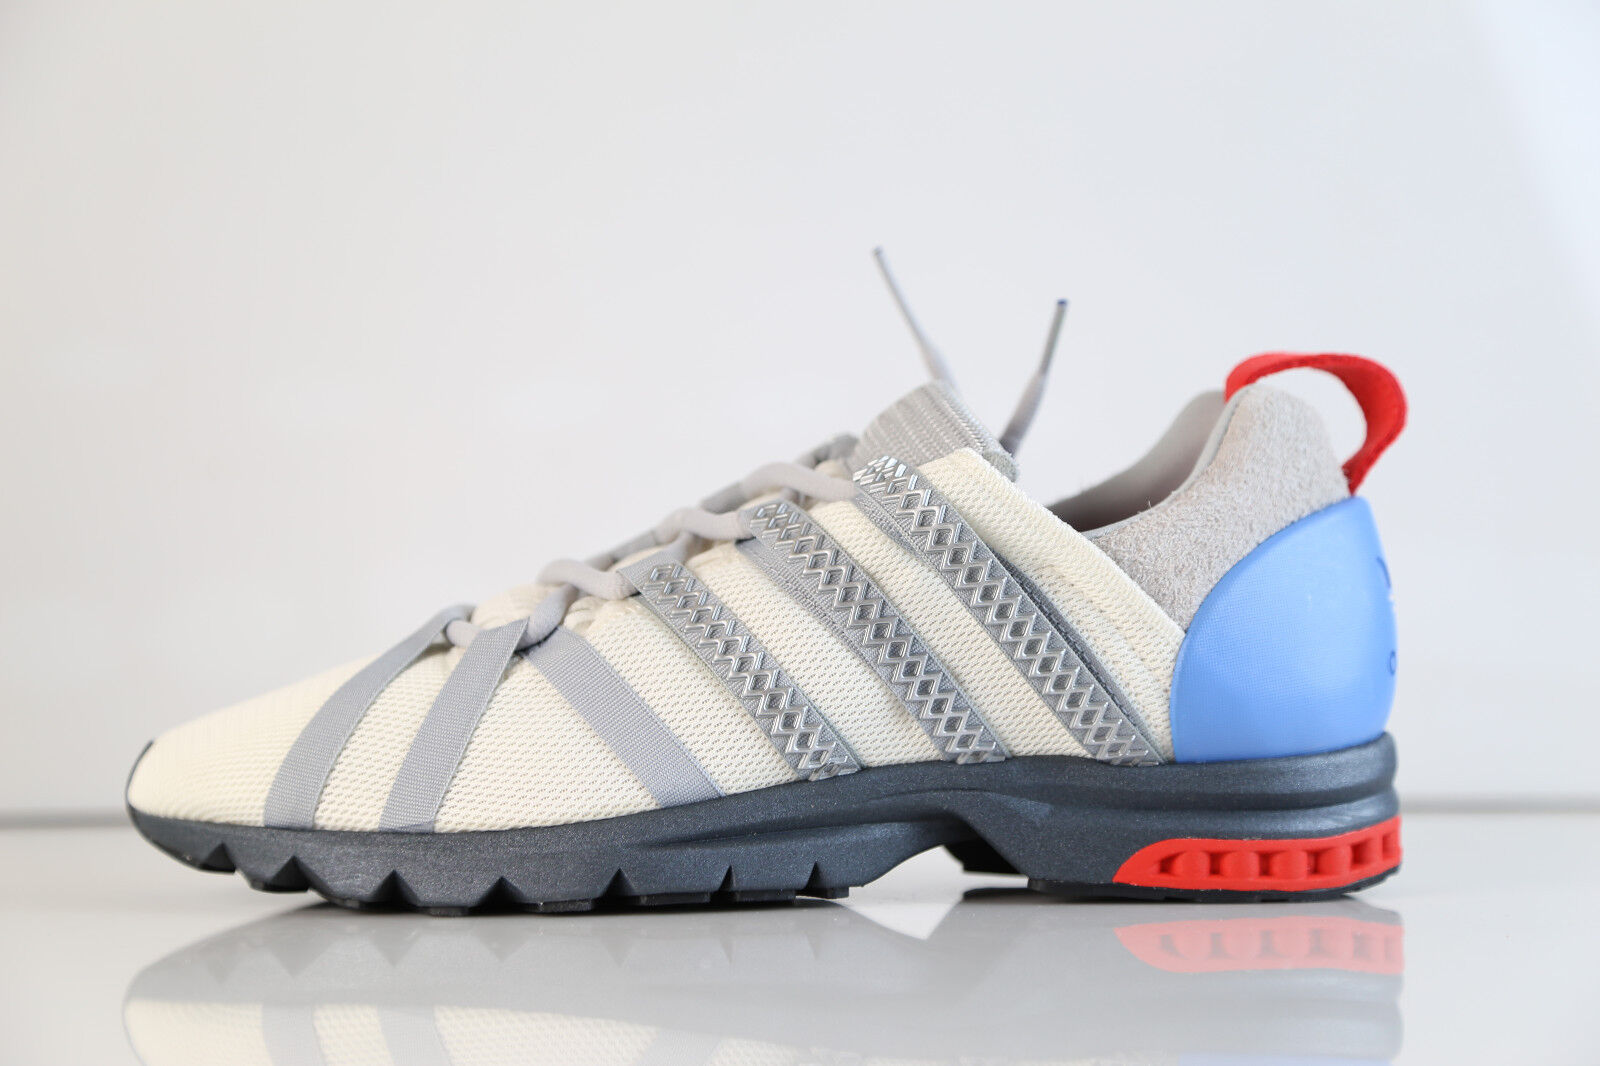 Adidas Consortium AD Parallel Dimension AdiStar Comp ADV White BY9836 8-13 Great discount